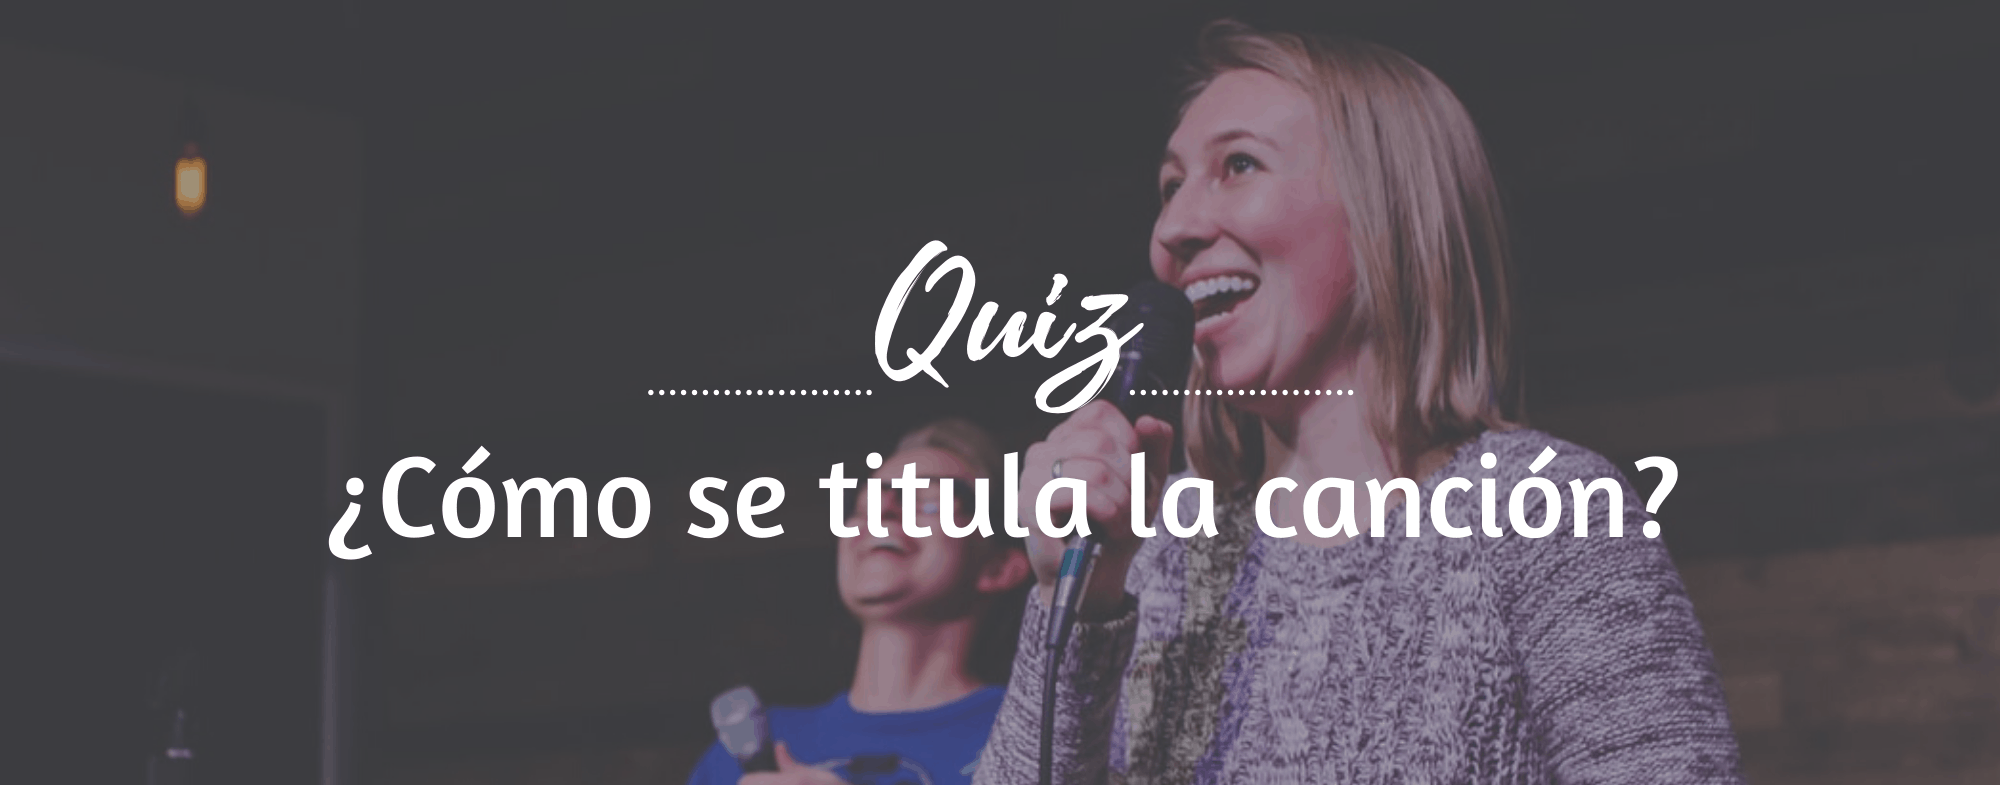 quiz-como-se-titula-la-cancion